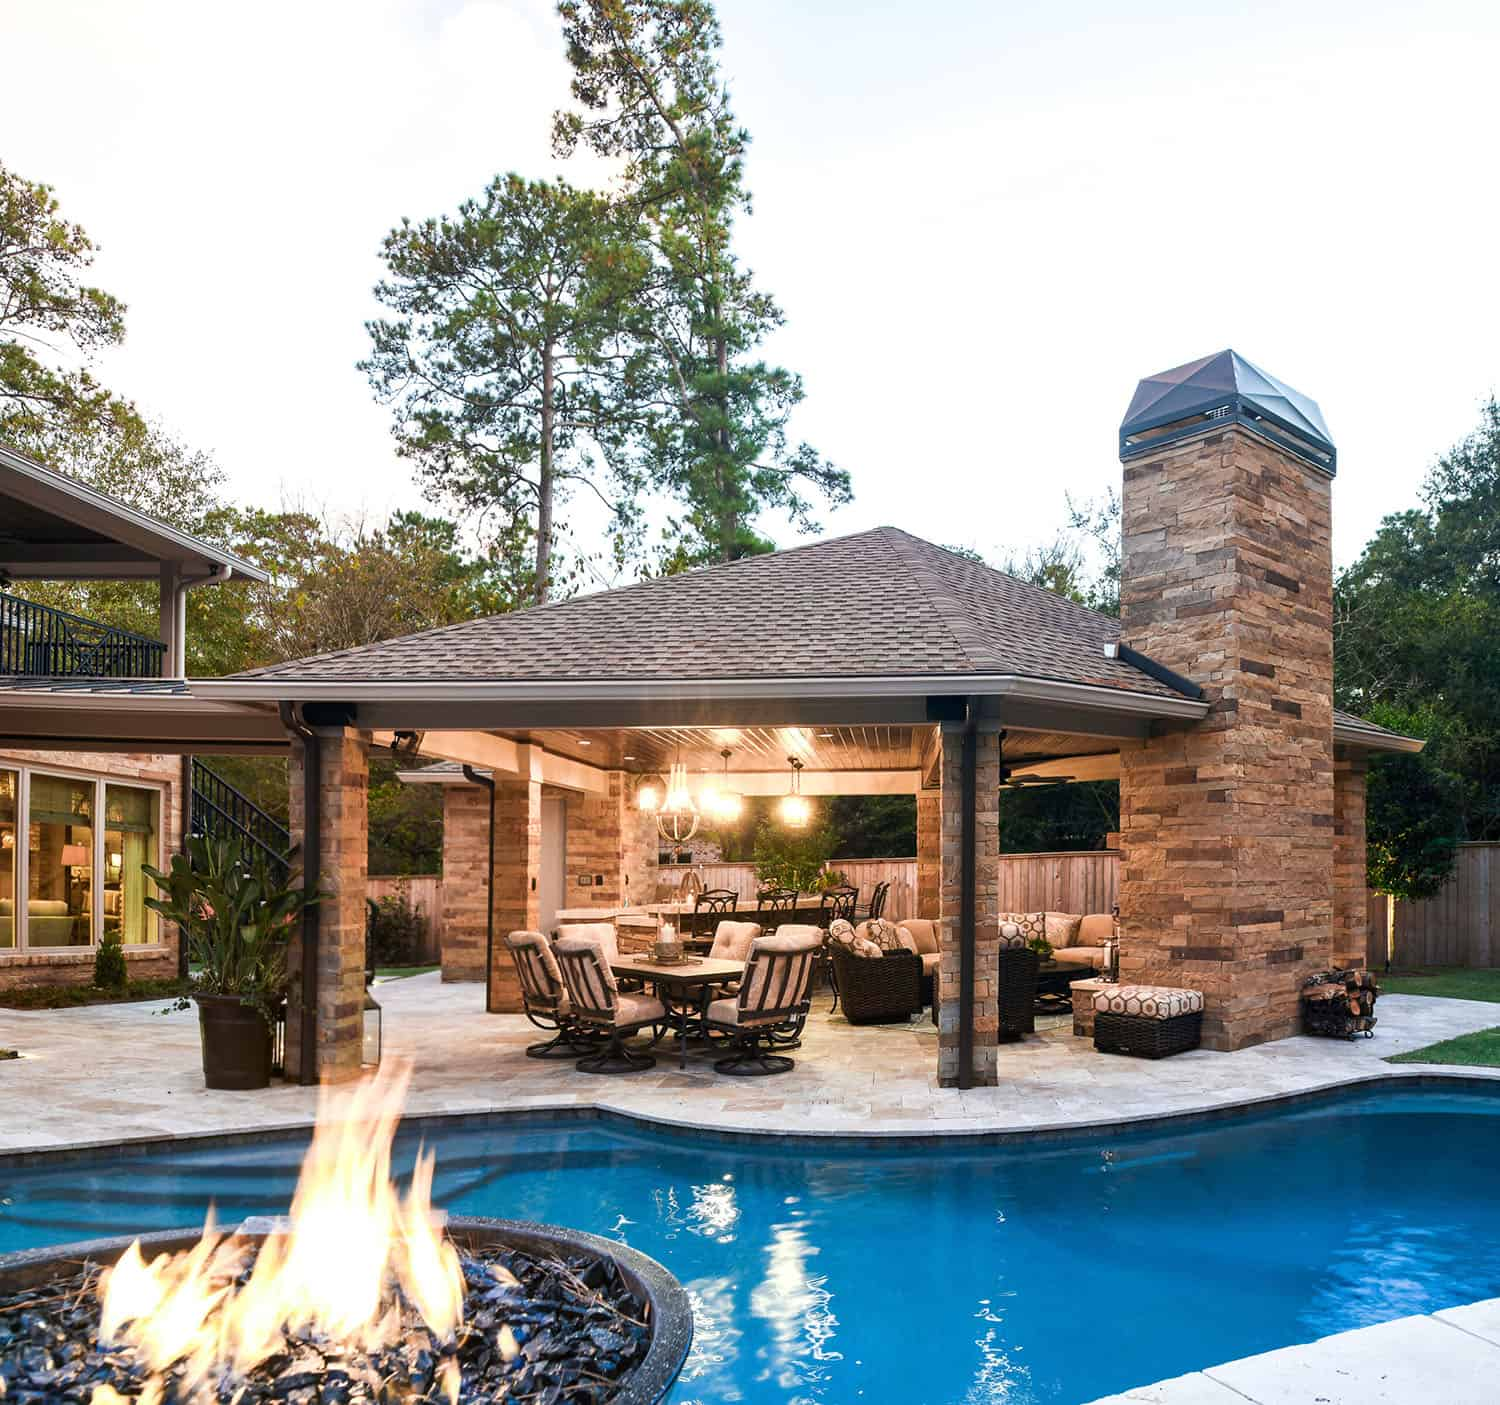 transitional-style-home-swimming-pool